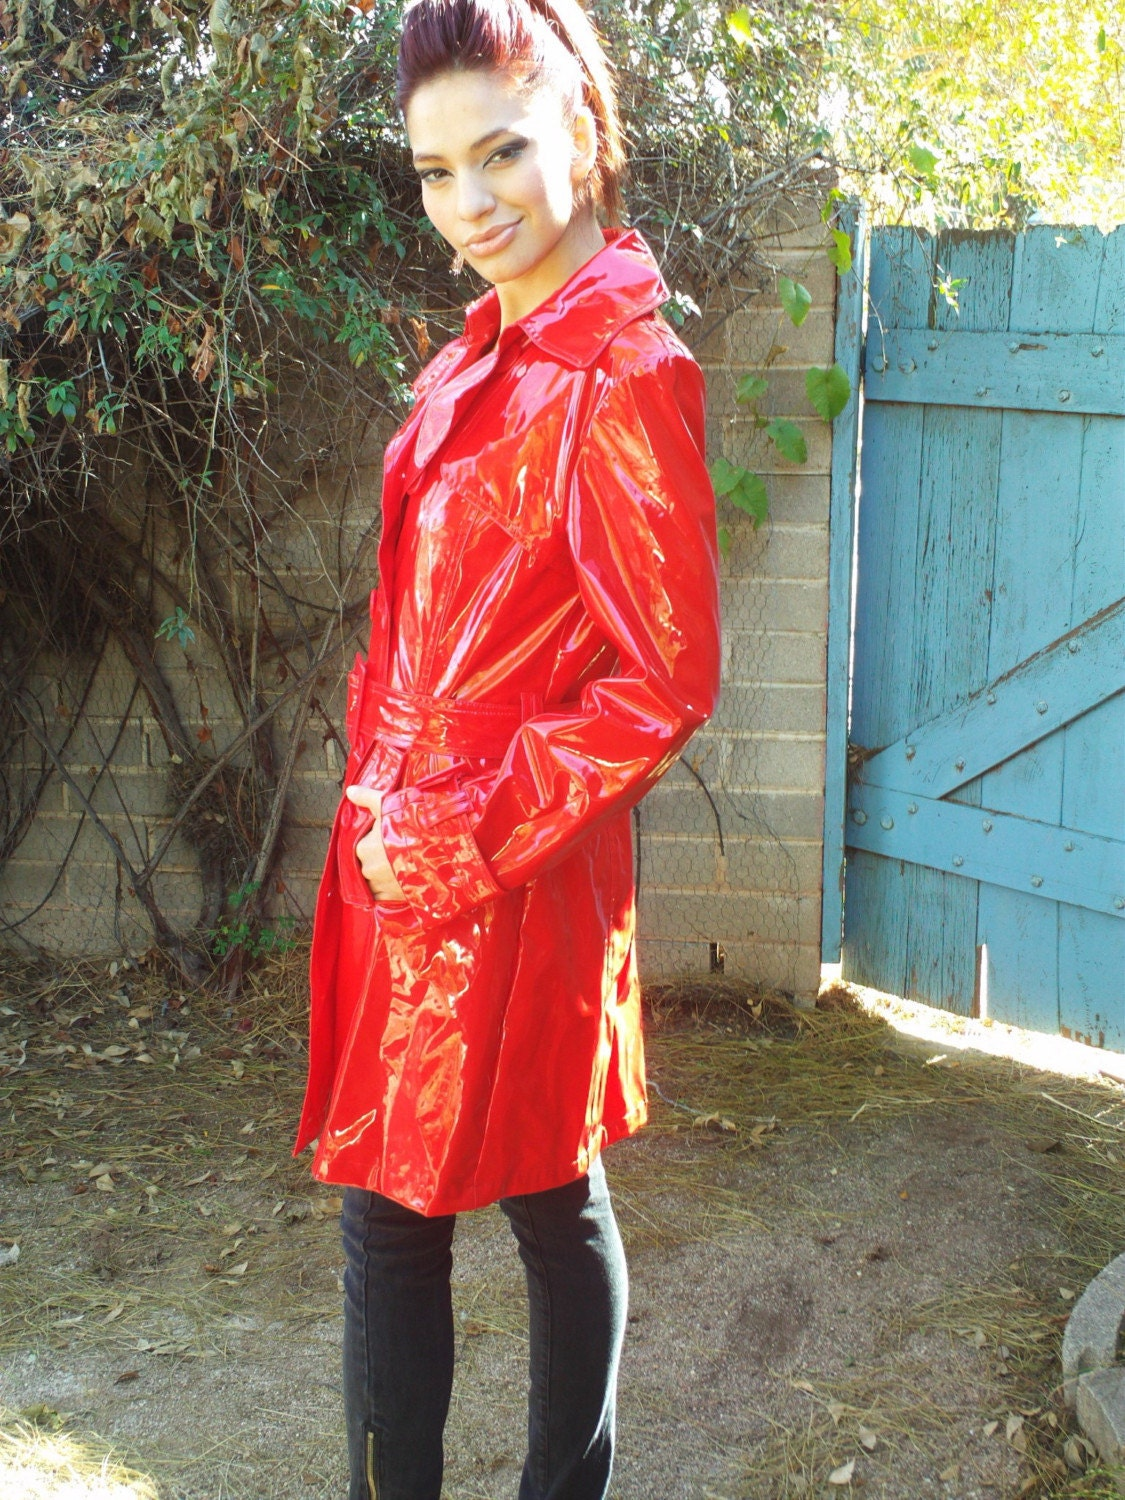 Vintage Killer Red Vinyl Raincoat Spy Jacket Super Sexy Coat